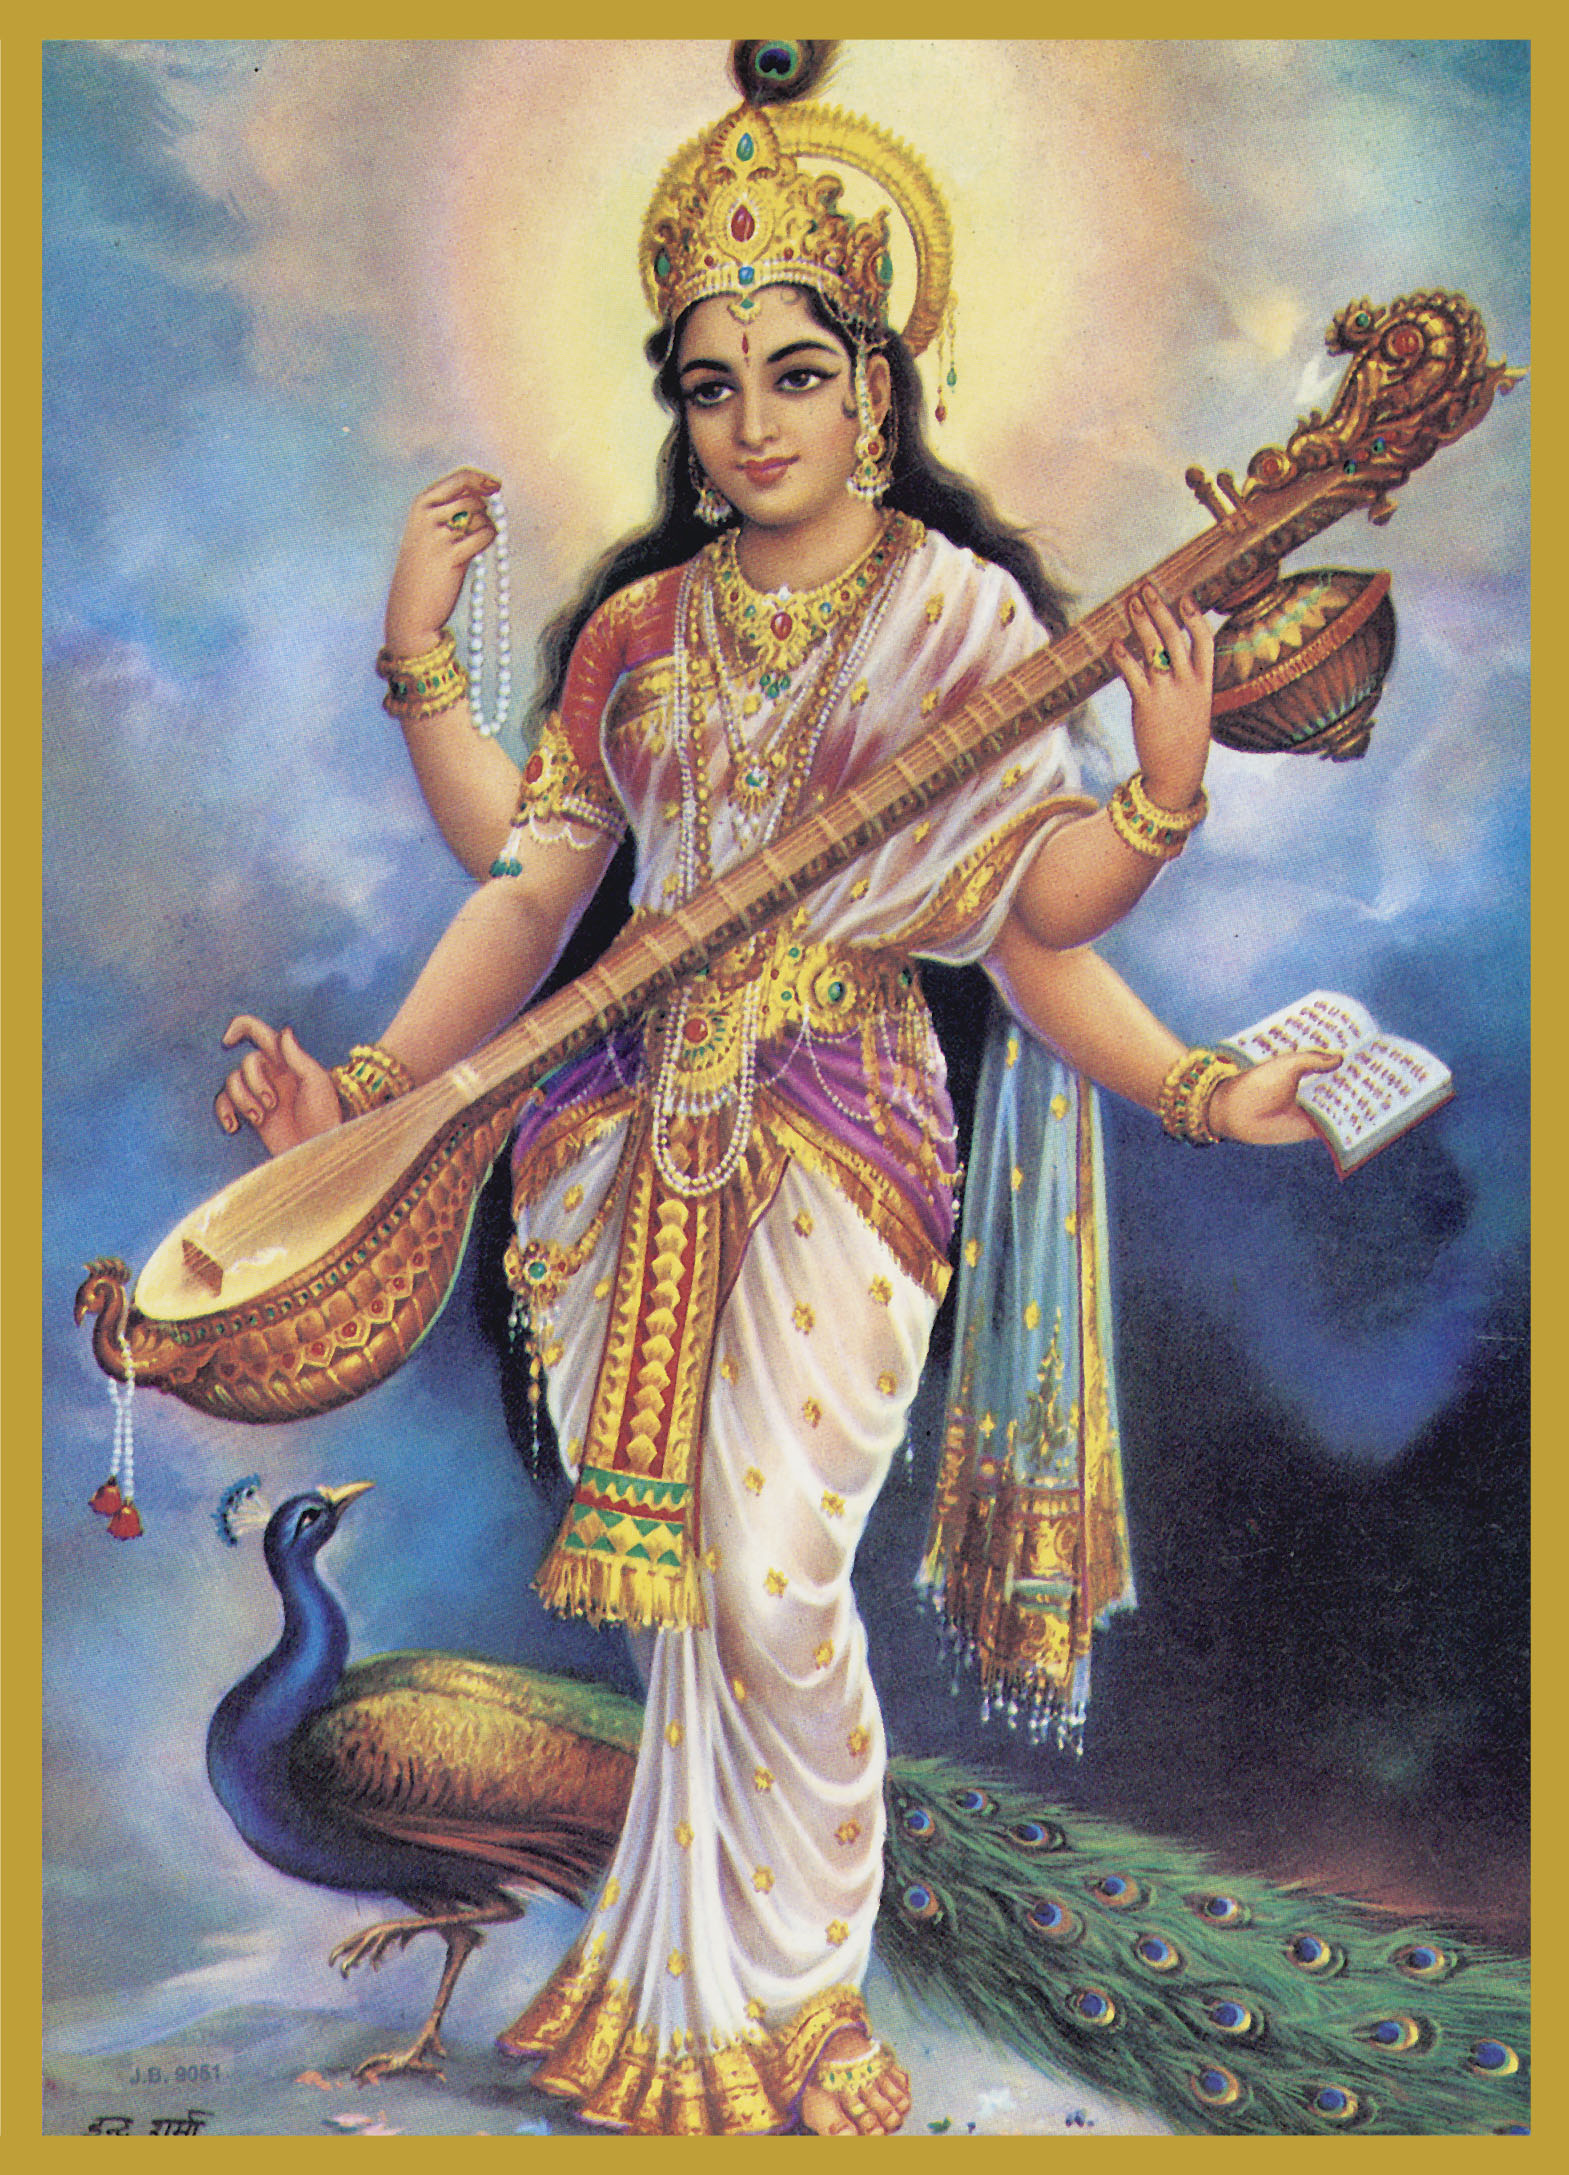 SAR-ST - SARASWATIGoddess of Creativity, Inspiration and LanguageSaraswati is the consort of Brahma, the creator -- she is therefore the Co-Creatrix or mother of the whole of creation. Saraswati means 'the flowing one.' She is the personification of all knowledge-- arts, language, music, mathematics and science.